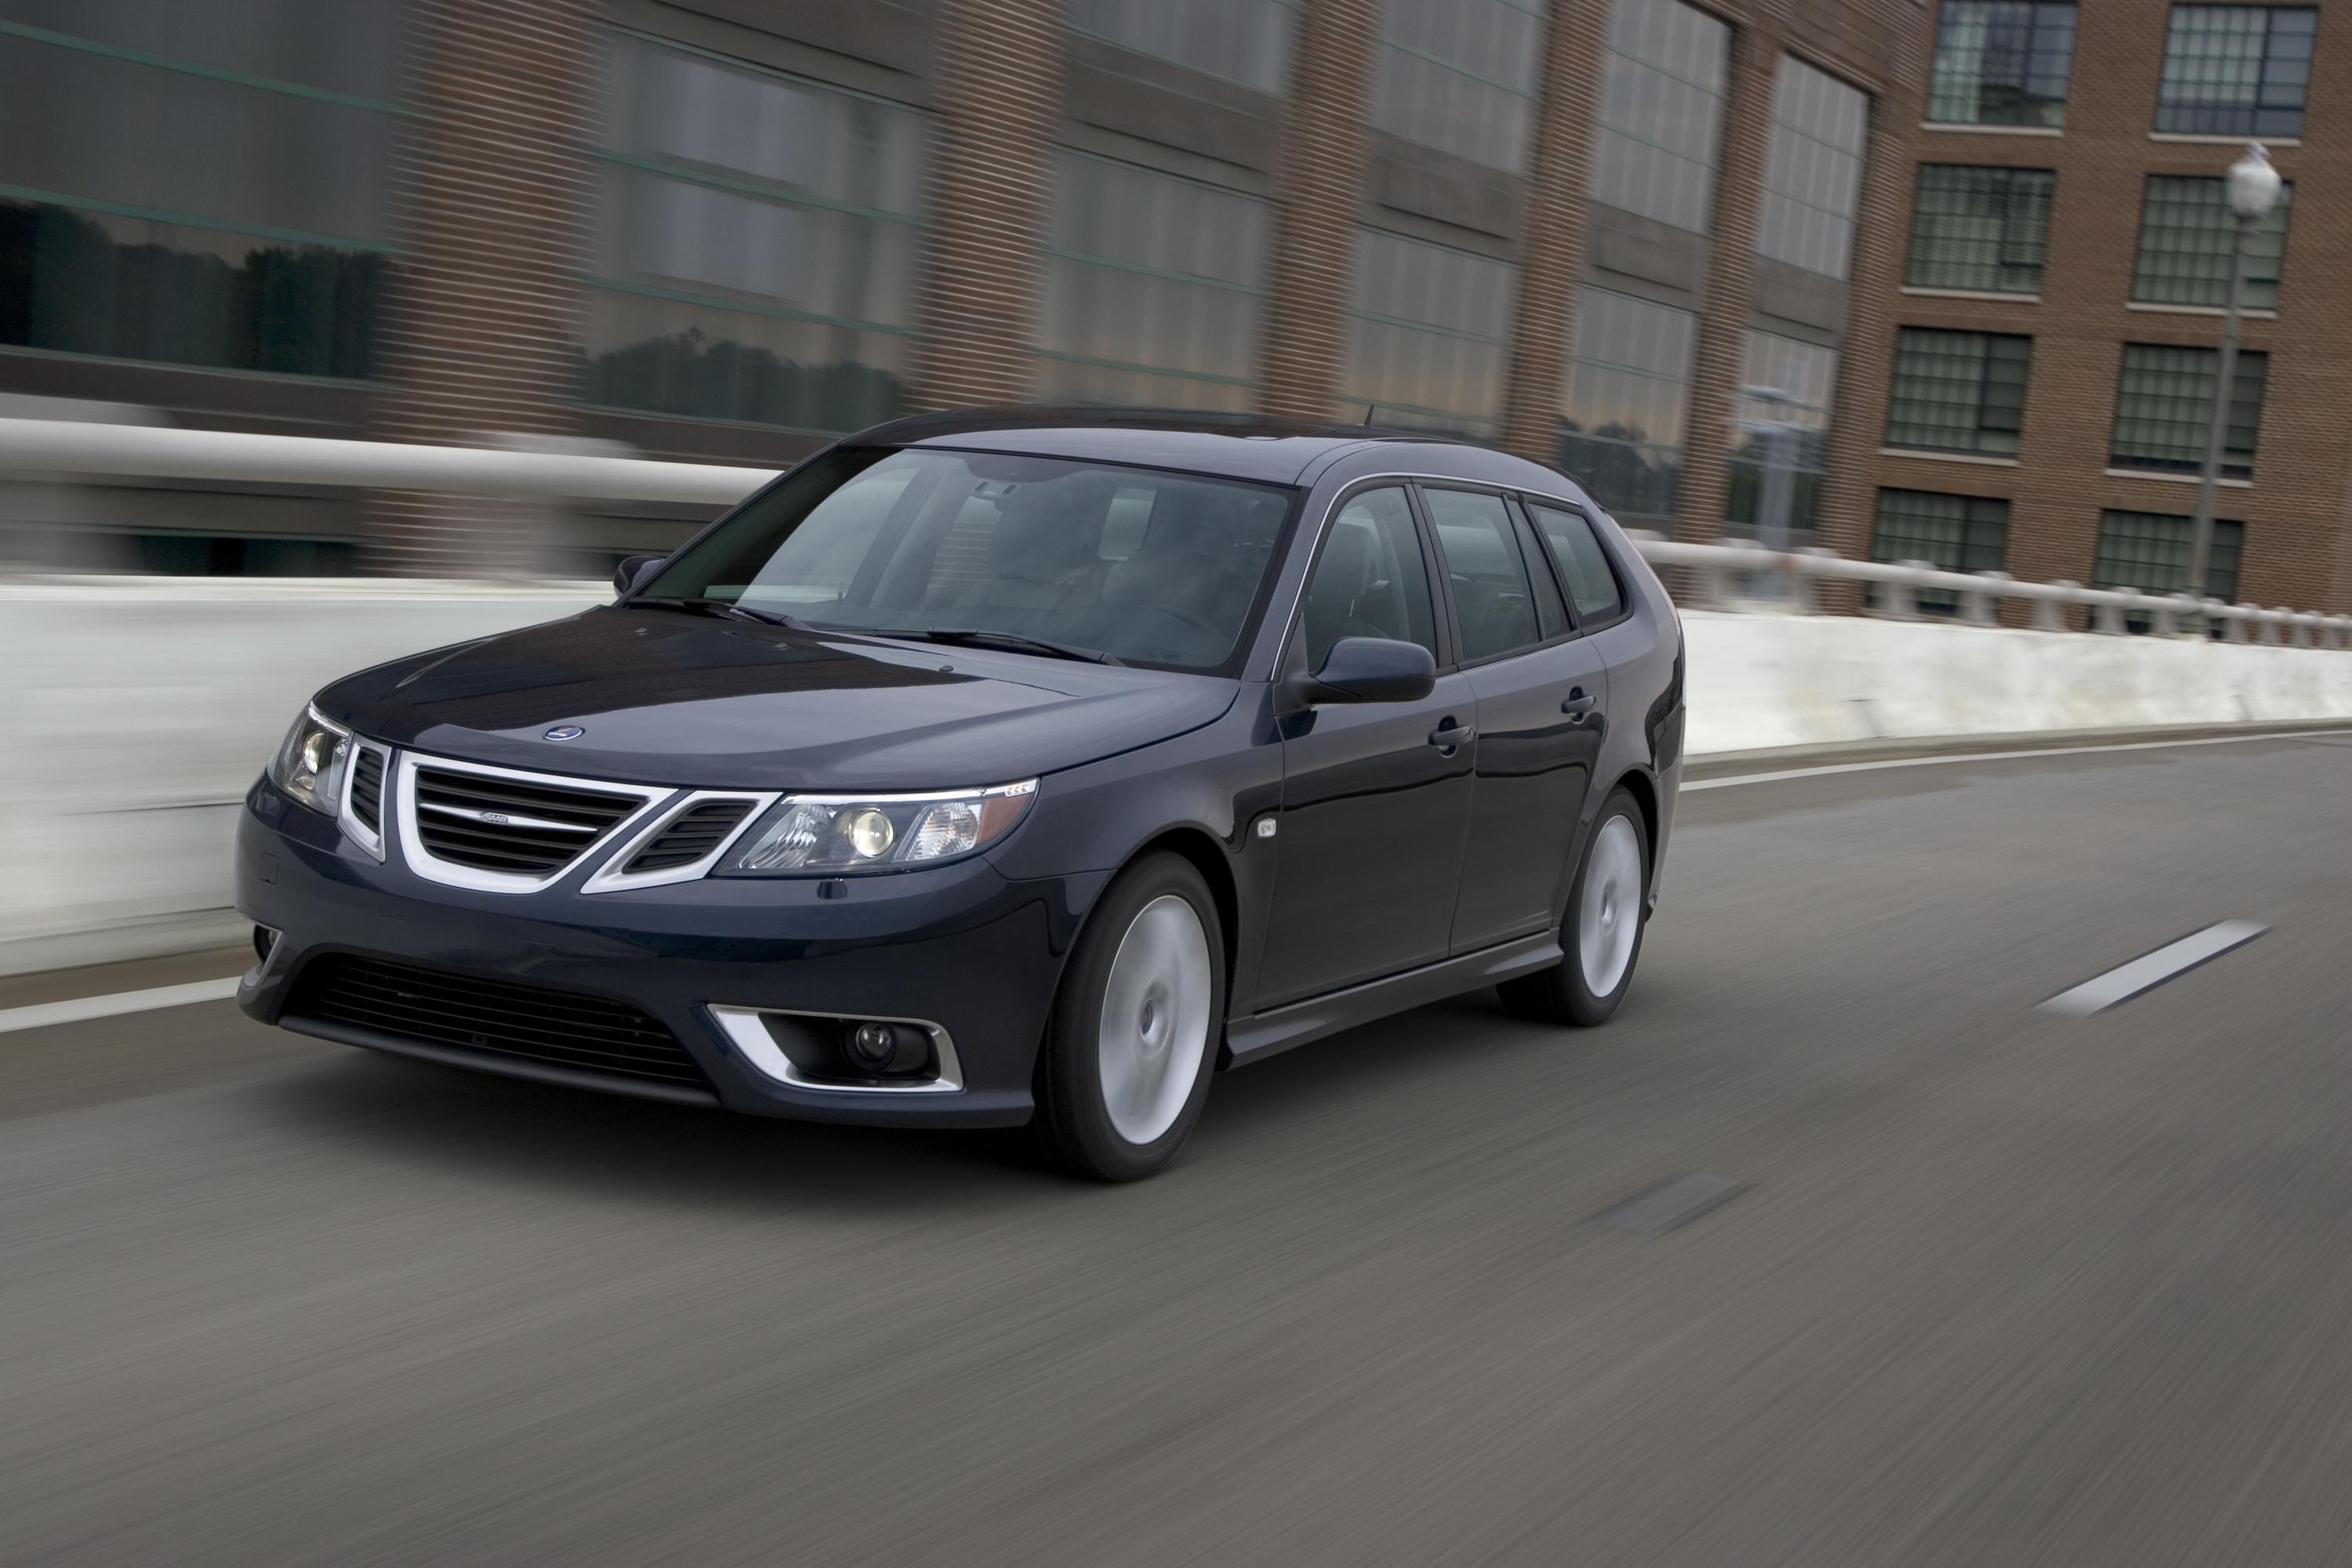 saab 9 3 wagon aero. Black Bedroom Furniture Sets. Home Design Ideas